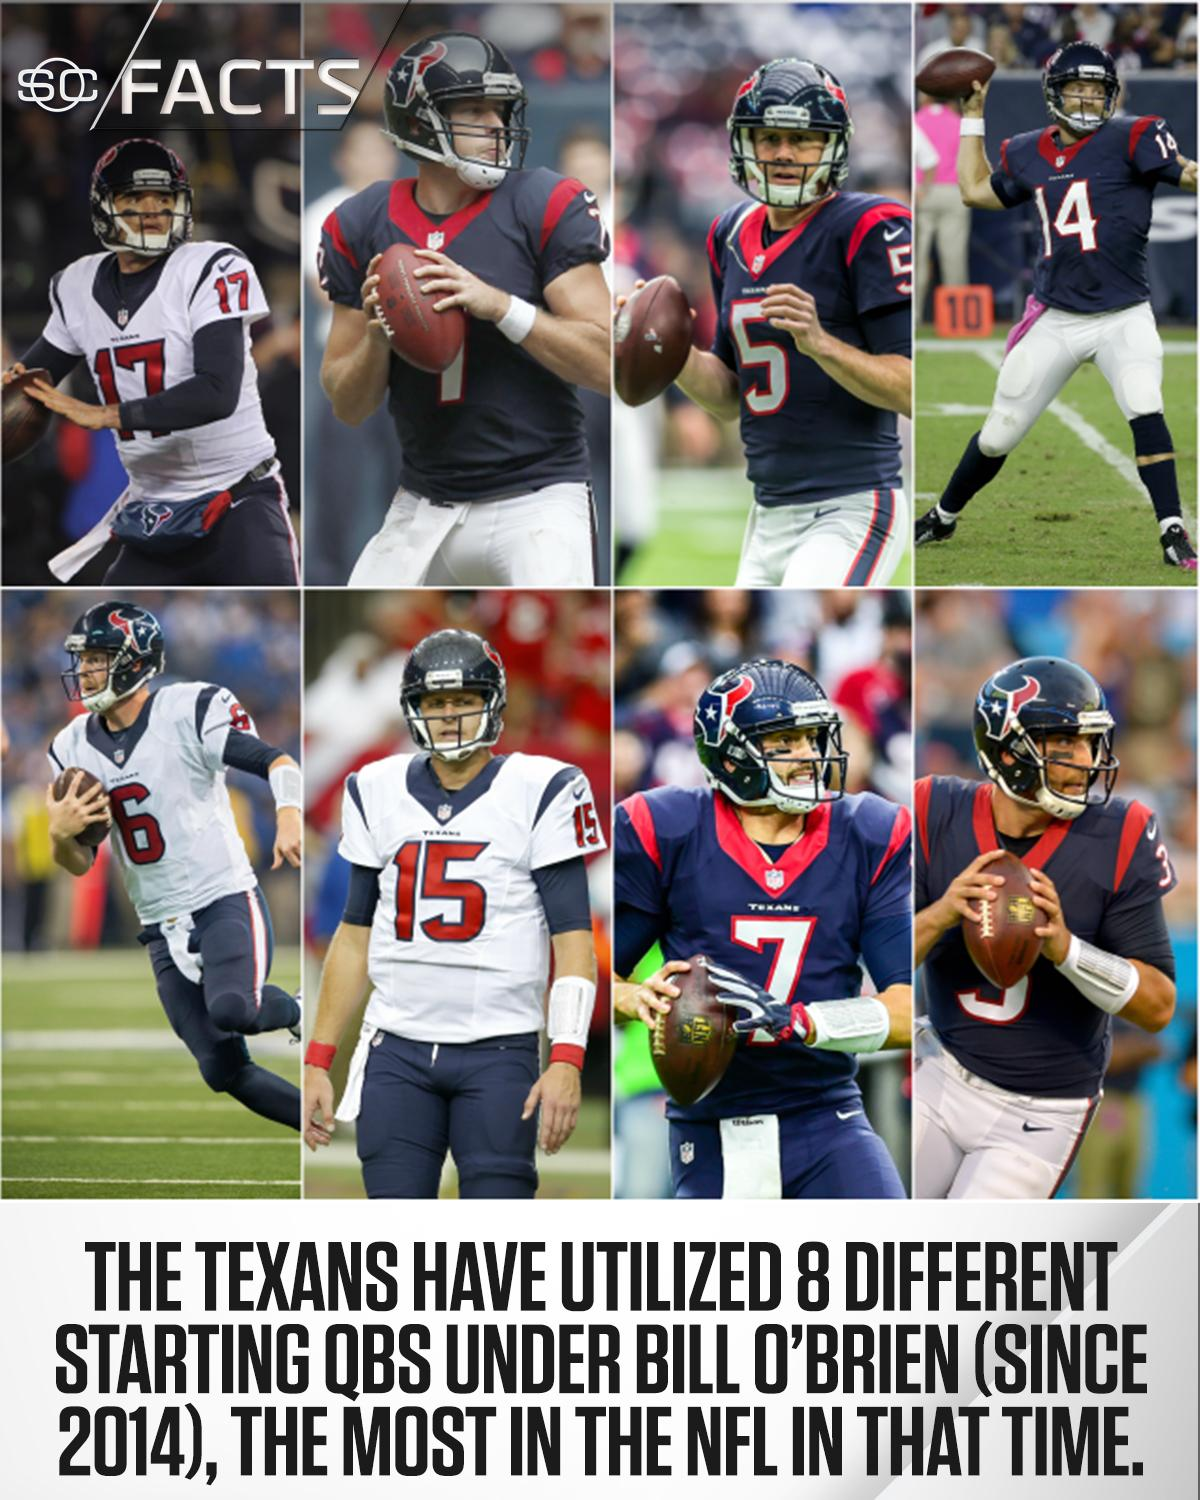 The Texans have been through a long journey of QBs. #SCFacts https://t.co/naSSbMHSt9